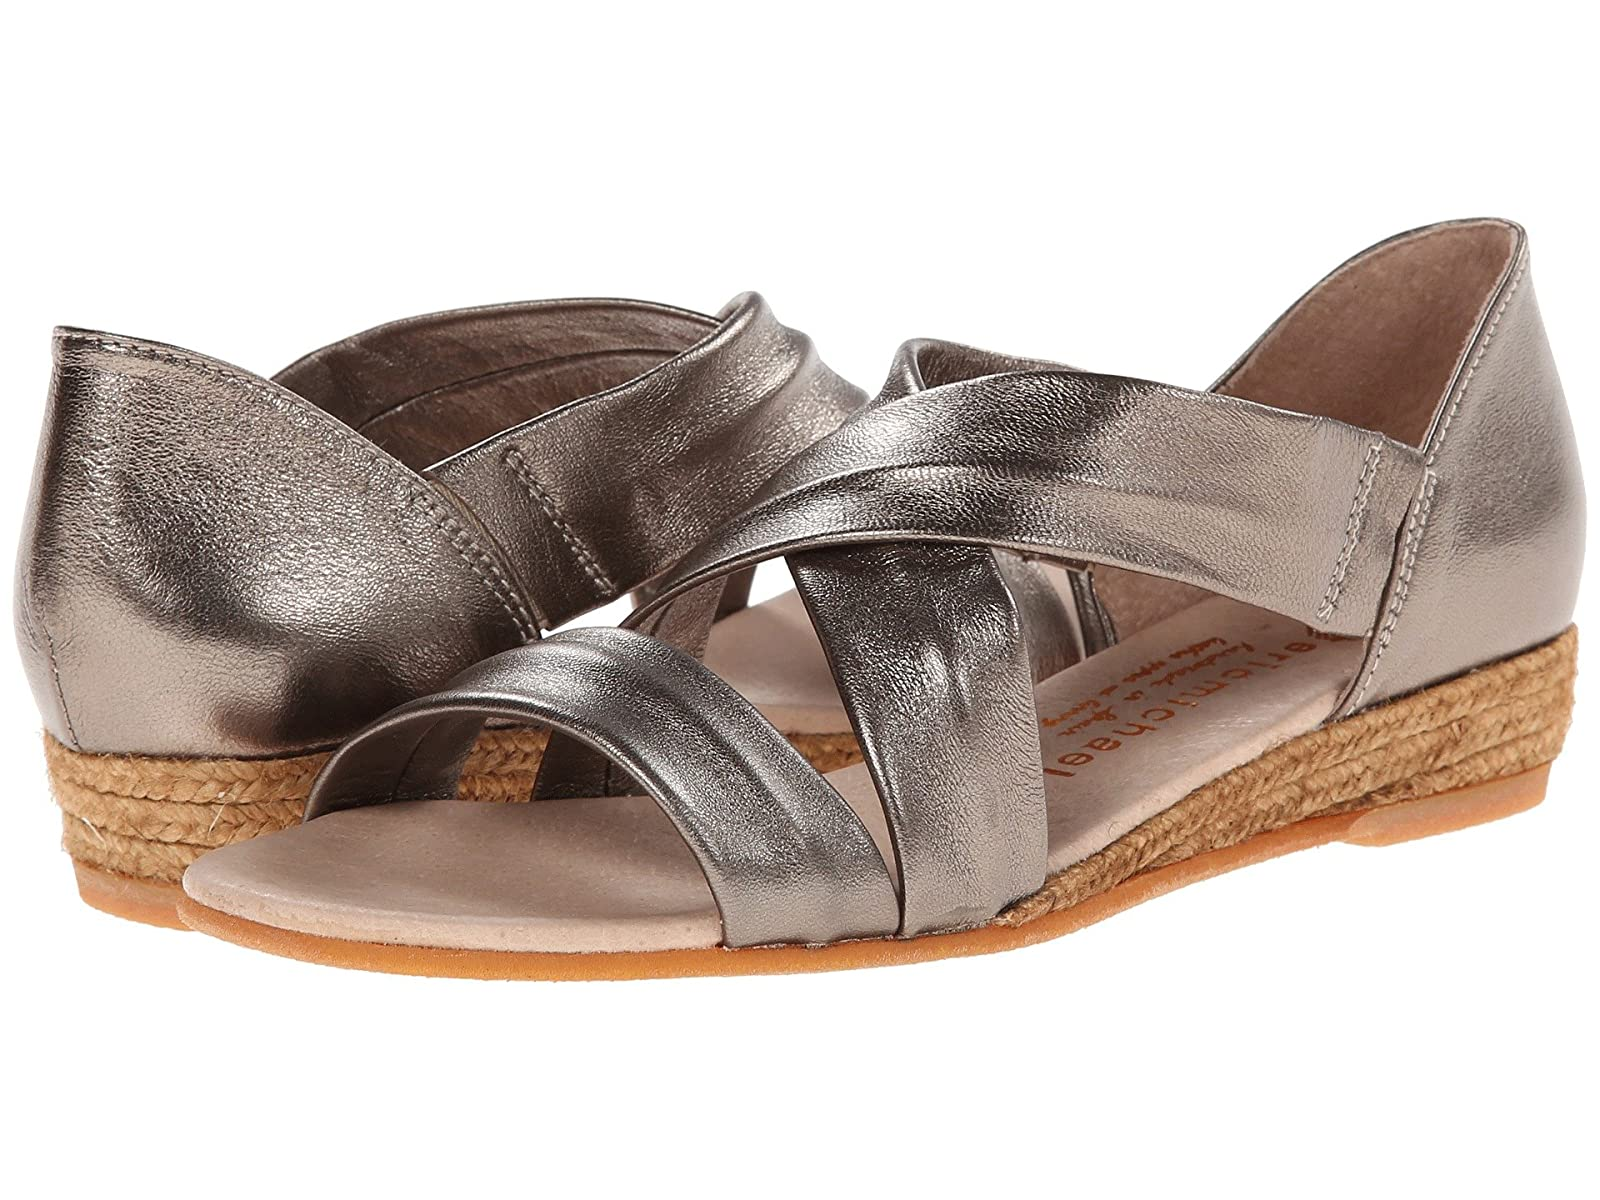 Eric Michael NettyAtmospheric grades have affordable shoes